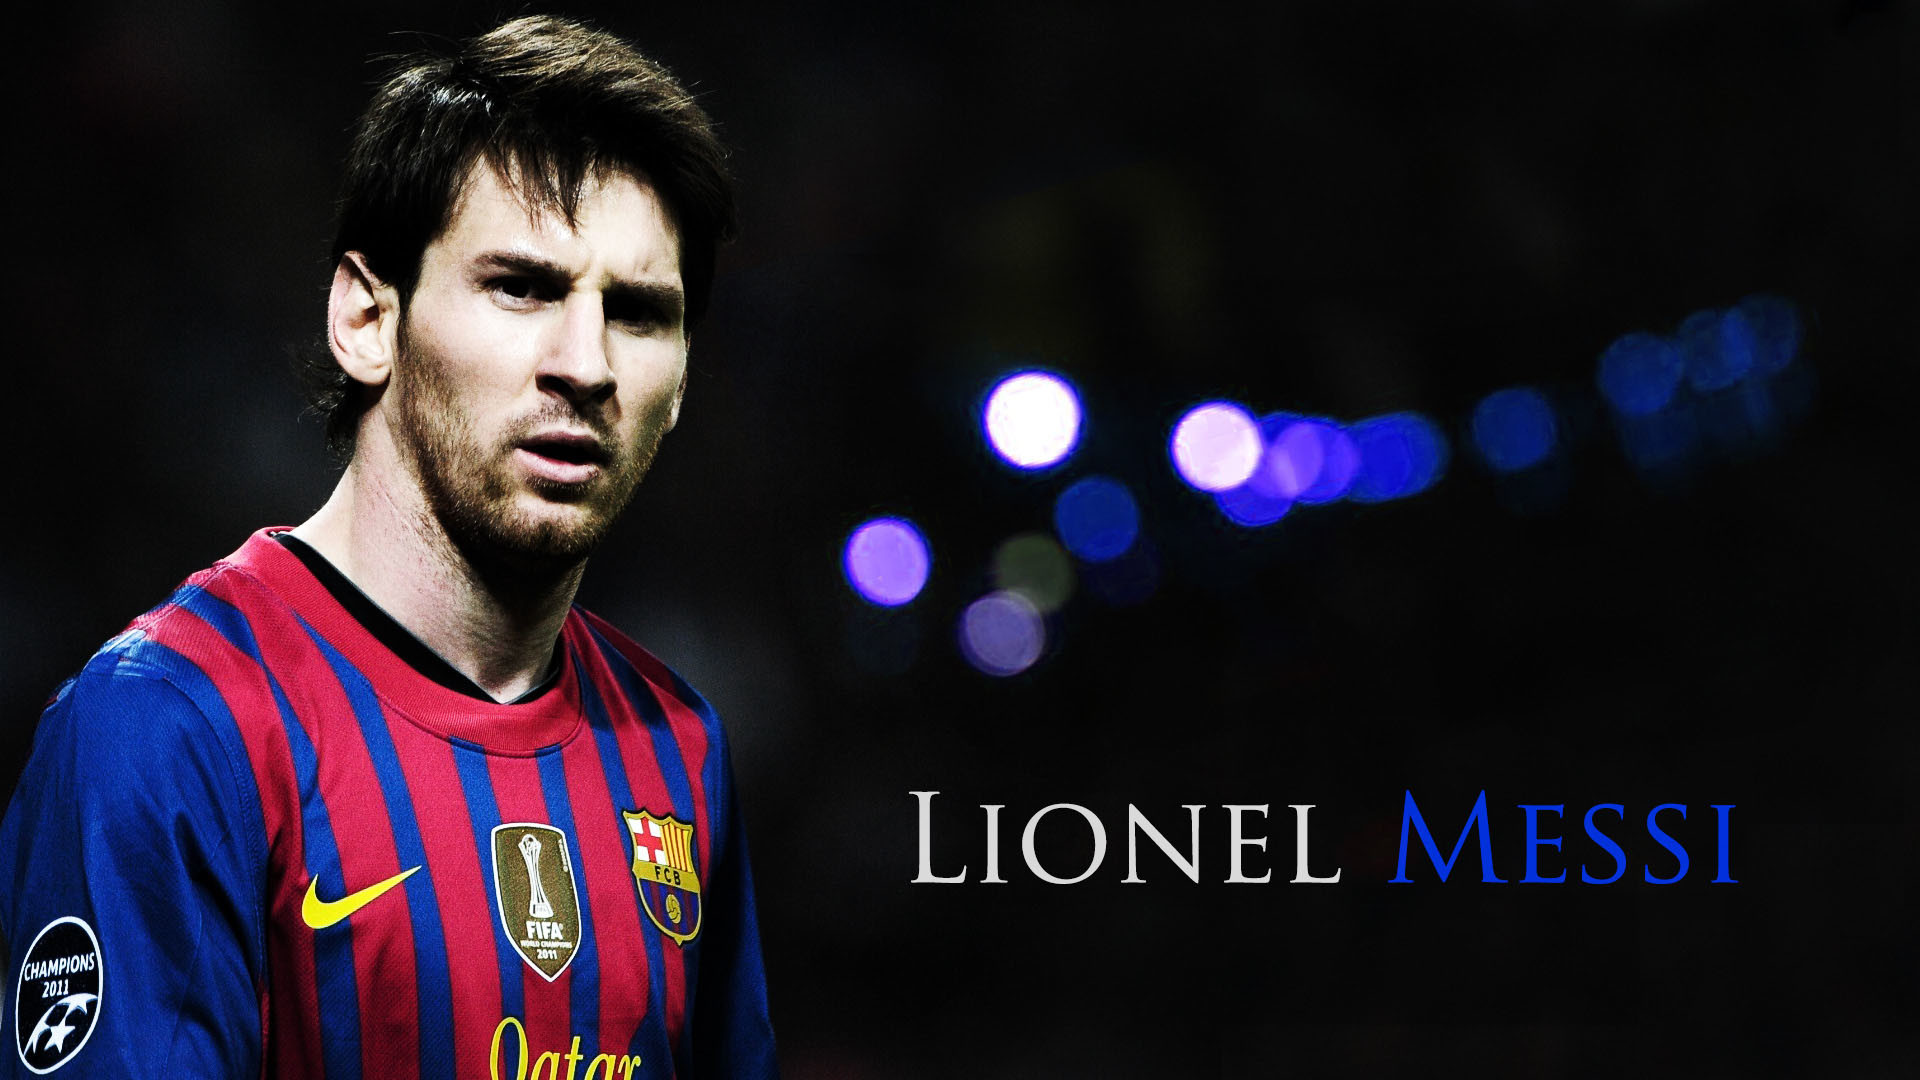 1920x1080 Lionel Messi Wallpaper HD Download - Free download latest Lionel Messi  Wallpaper HD Download for Computer